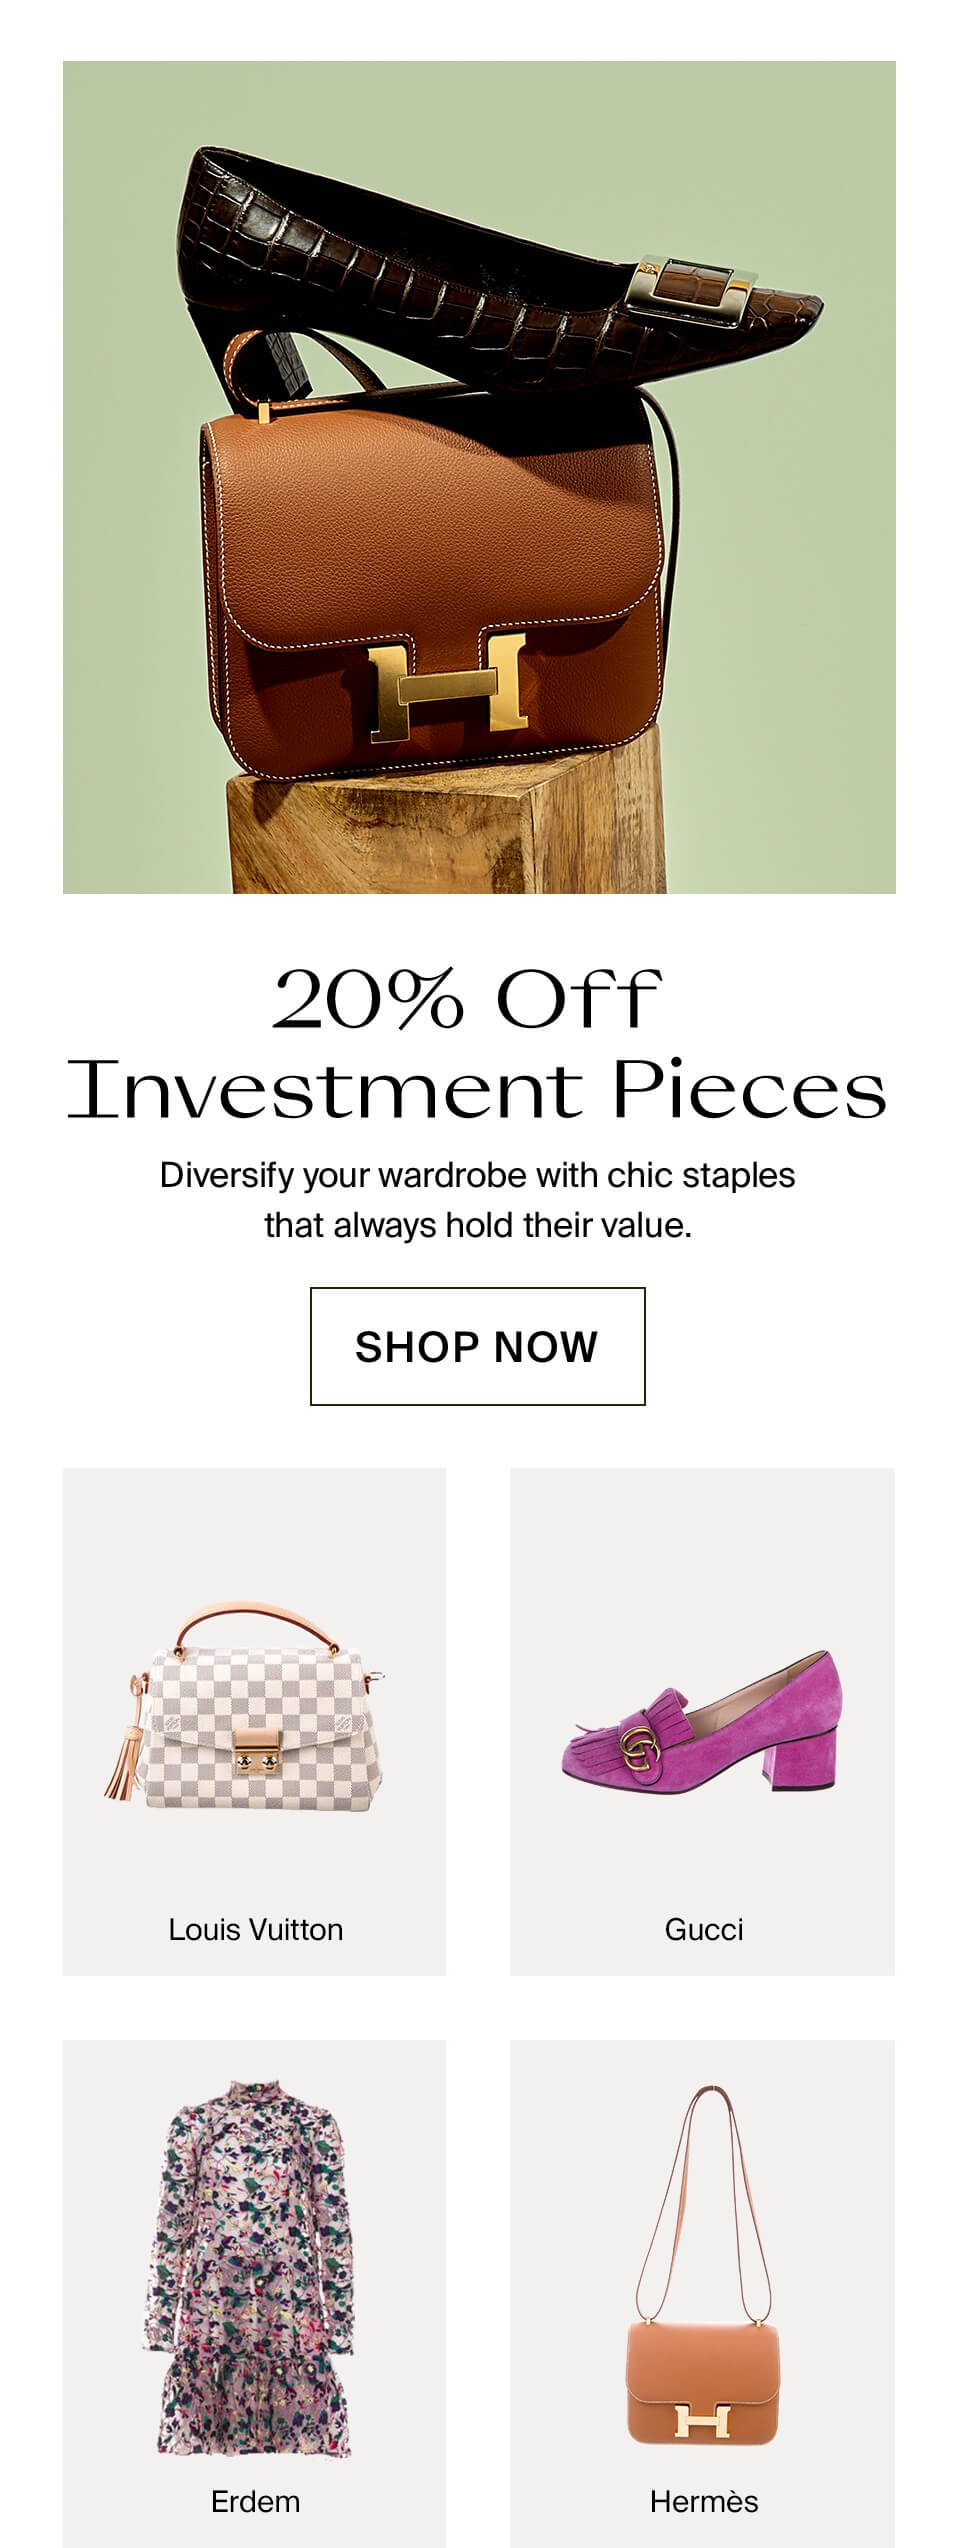 20% Off Women's Investment Pieces